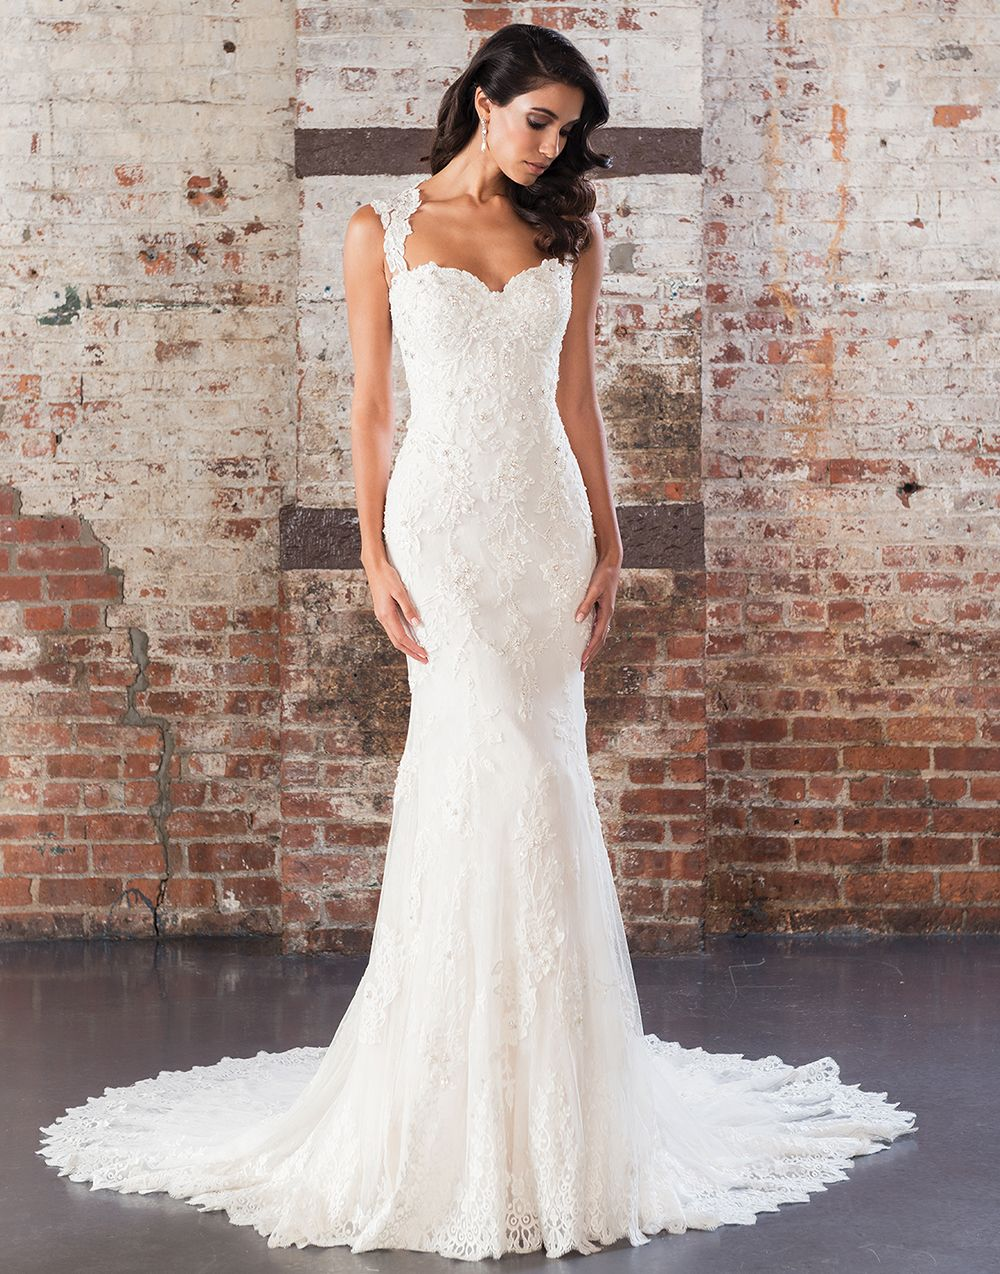 Justin Alexander Signature Wedding Dresses Style 9861 Show Off Your Figure In This Tulle And Jersey Fit Flare Gown With A Queen Anne Neckline